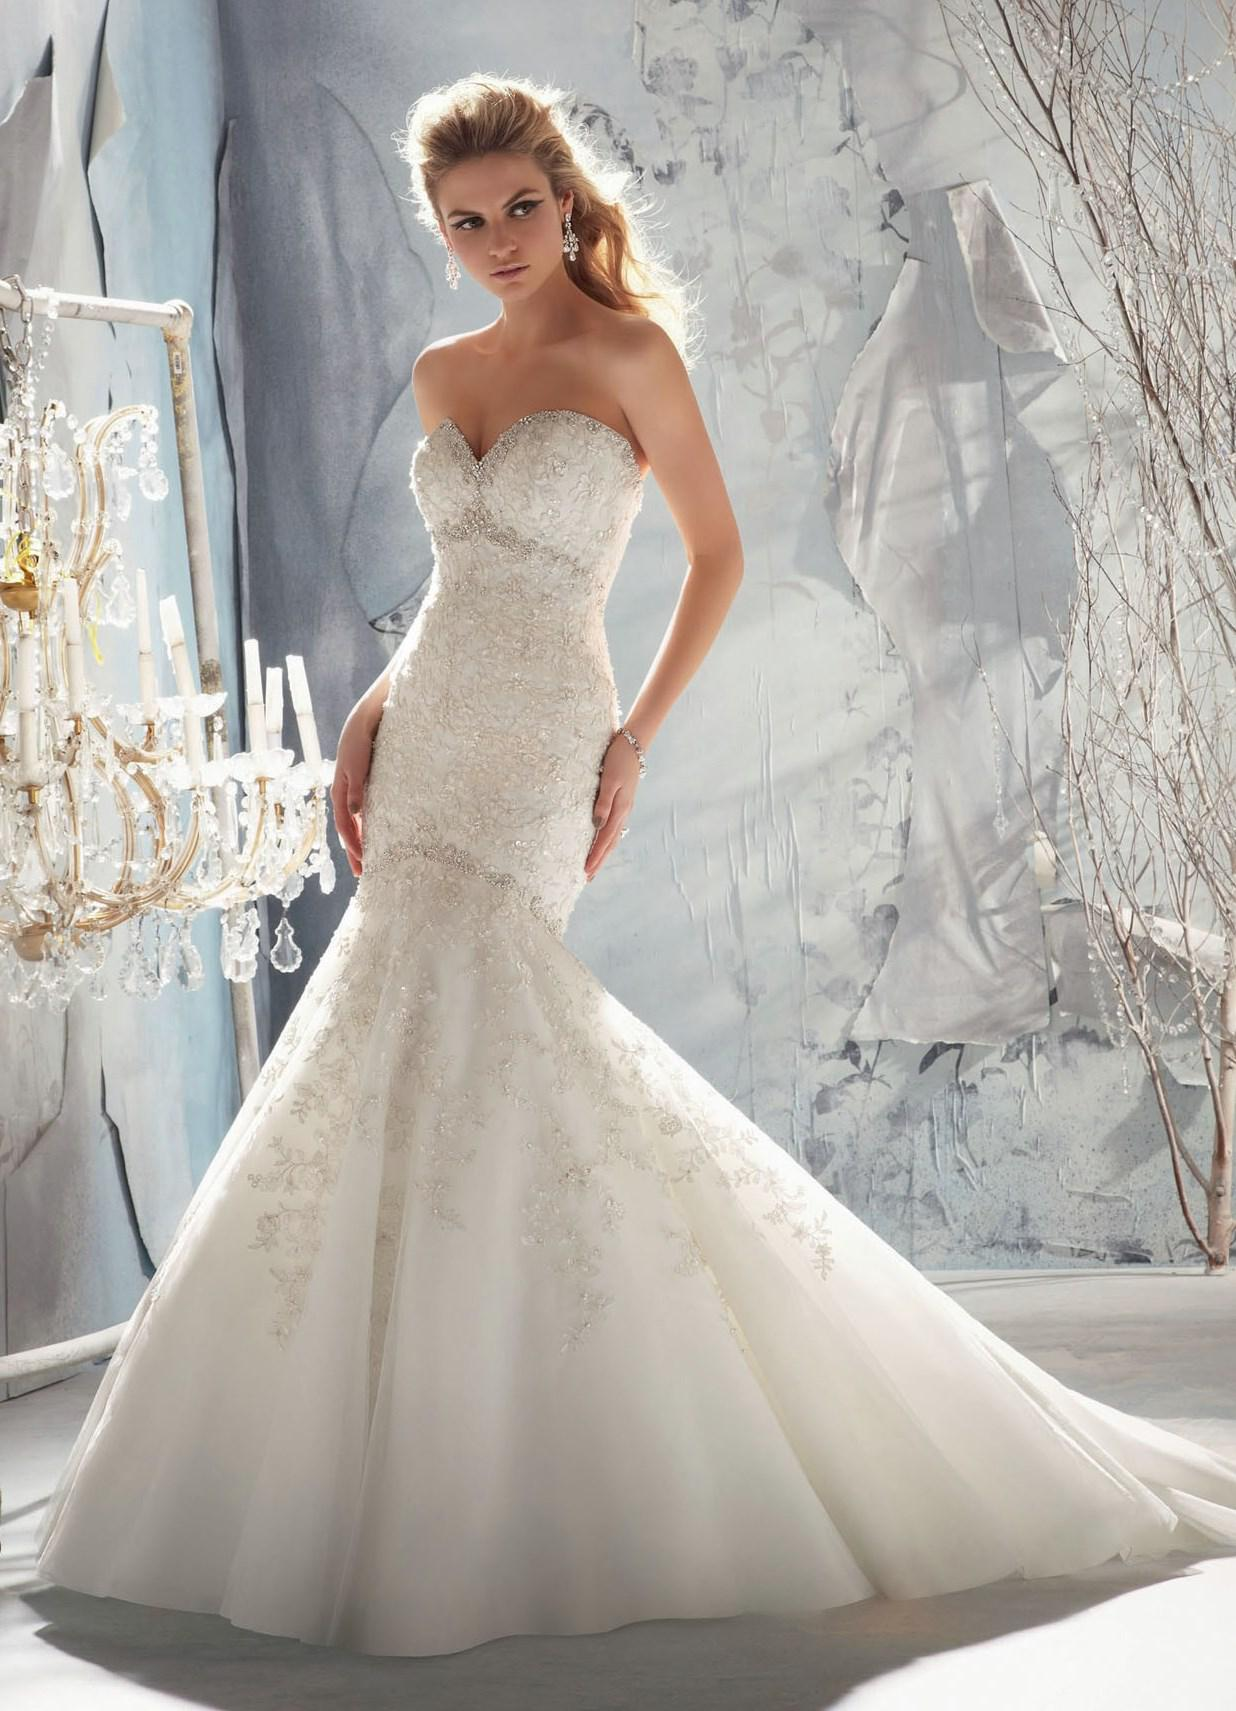 Mori Lee - 1969, White: 36